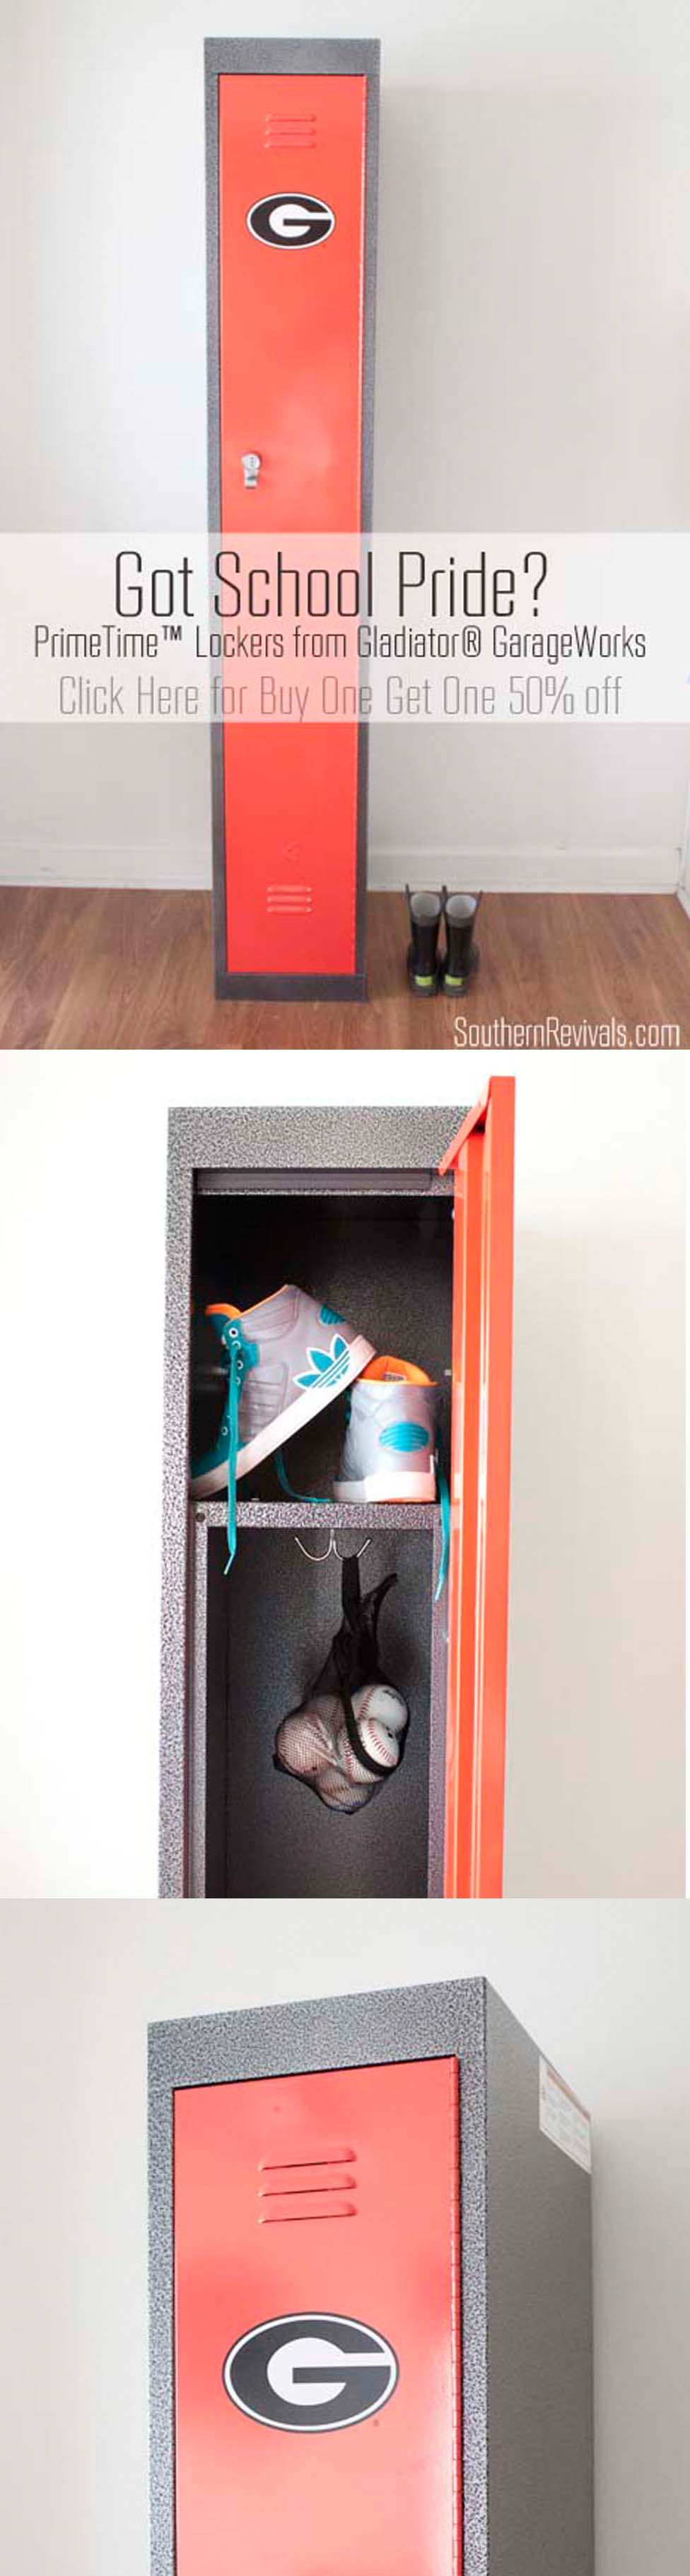 PrimeTime Lockers by Gladiator GarageWorks